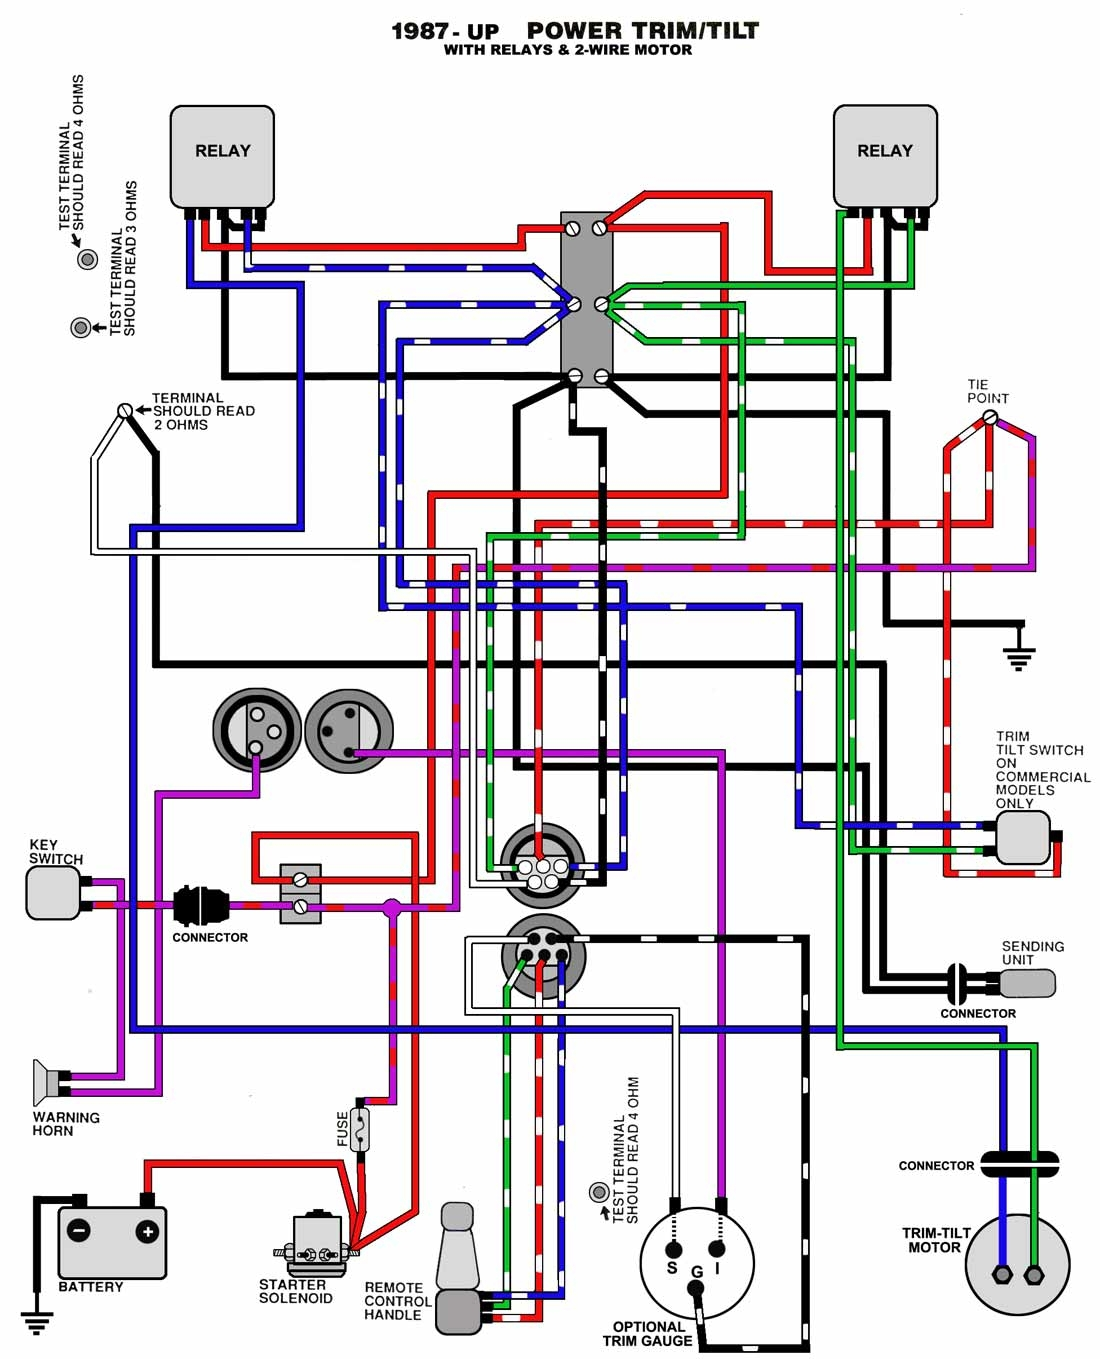 mercury outboard ignition switch wiring diagram outboard ignition switch wiring diagram mercury outboard ignition switch wiring diagram | free ...